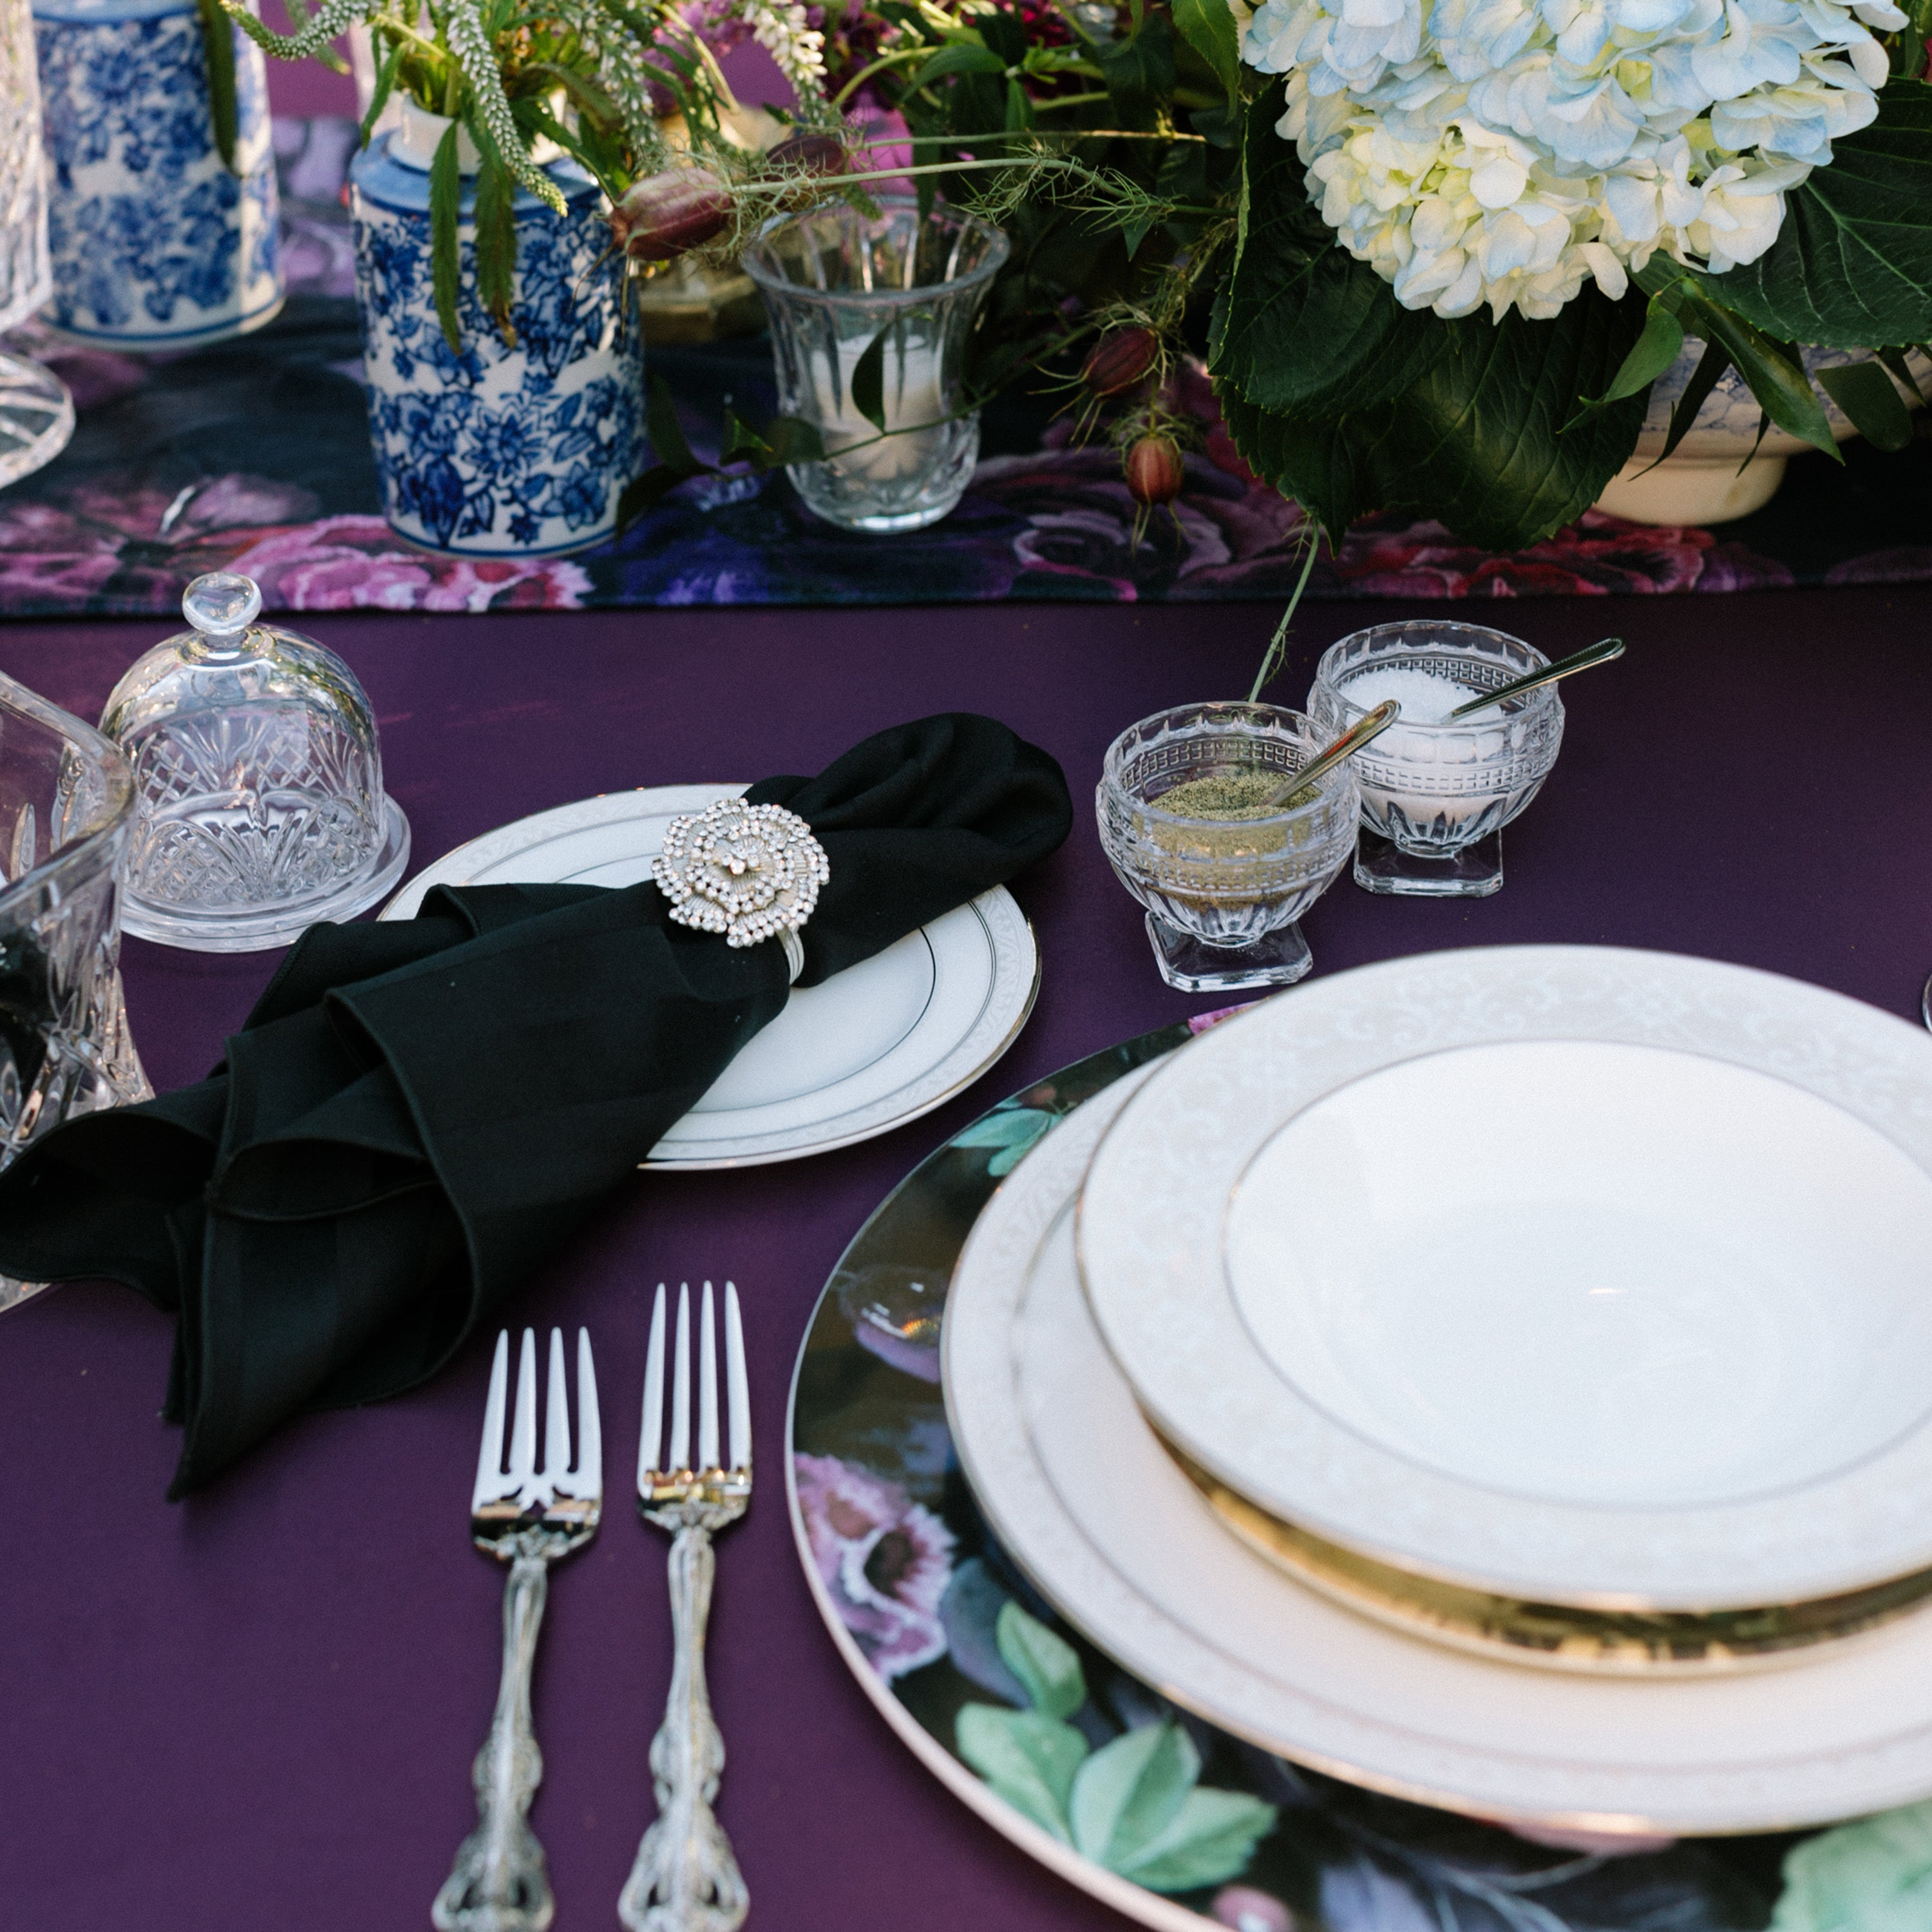 China, Glassware, Flatware, Why Yes, Darling!